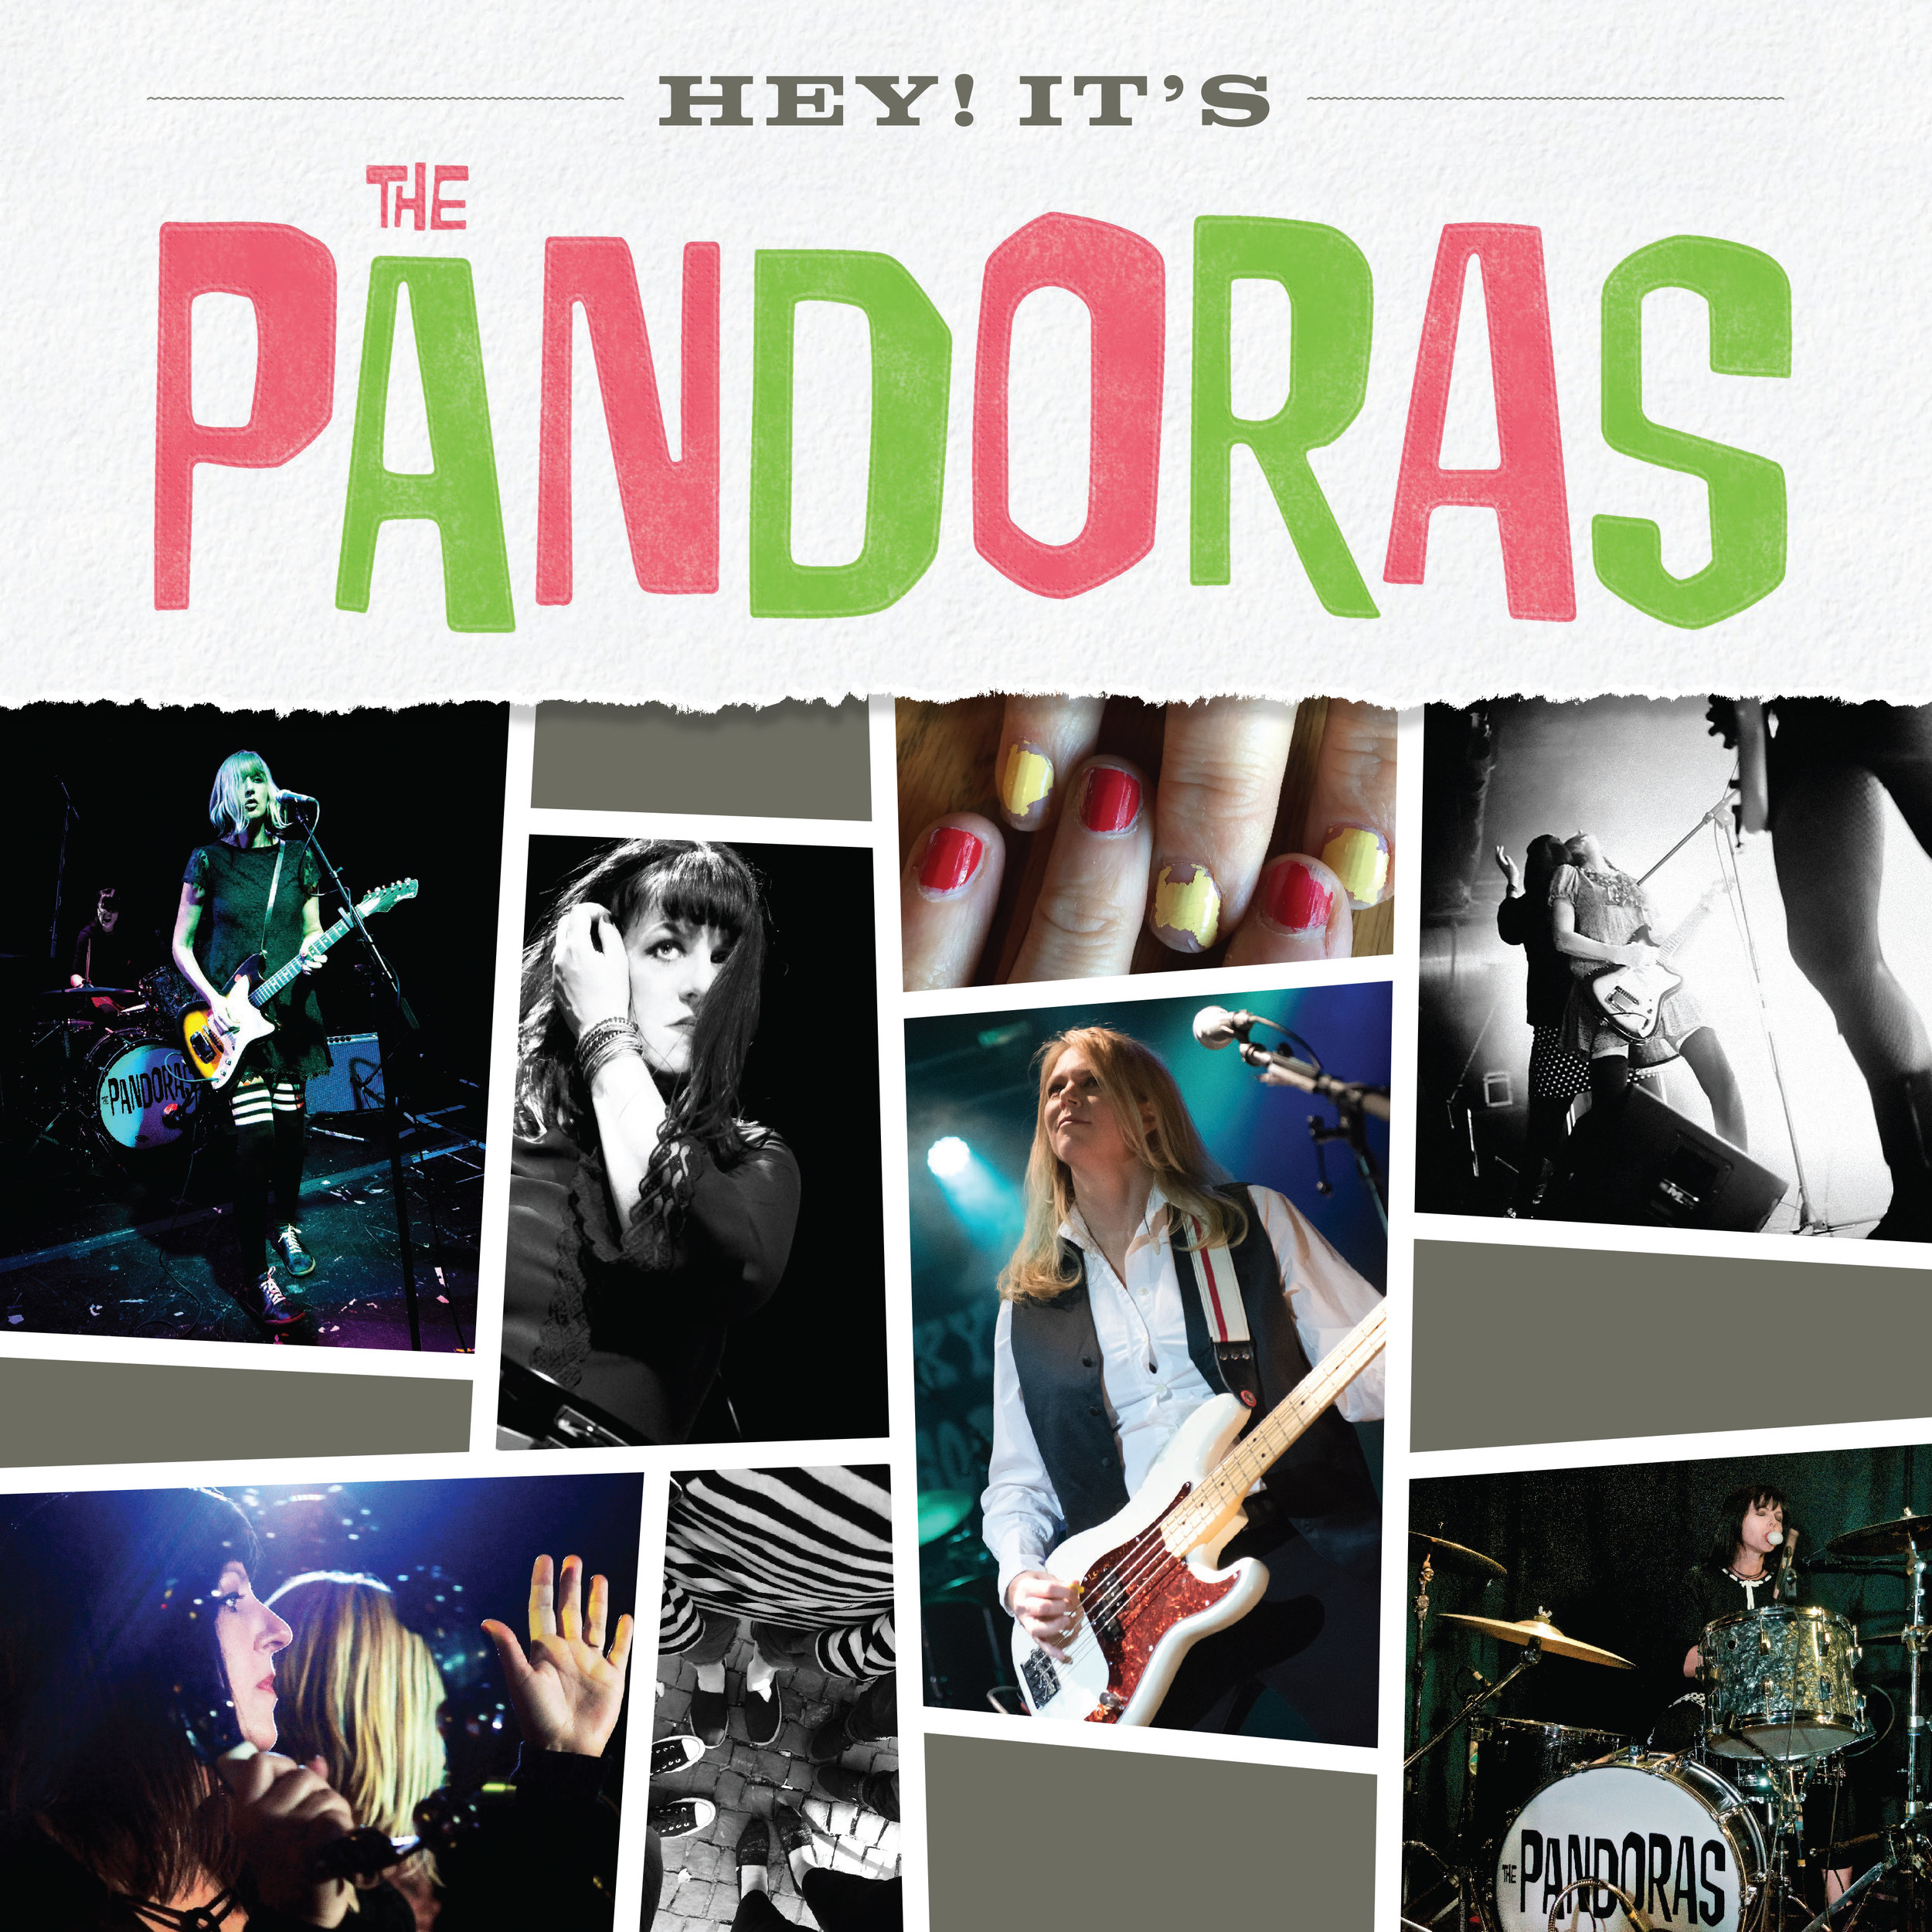 The Pandoras EP/CD cover